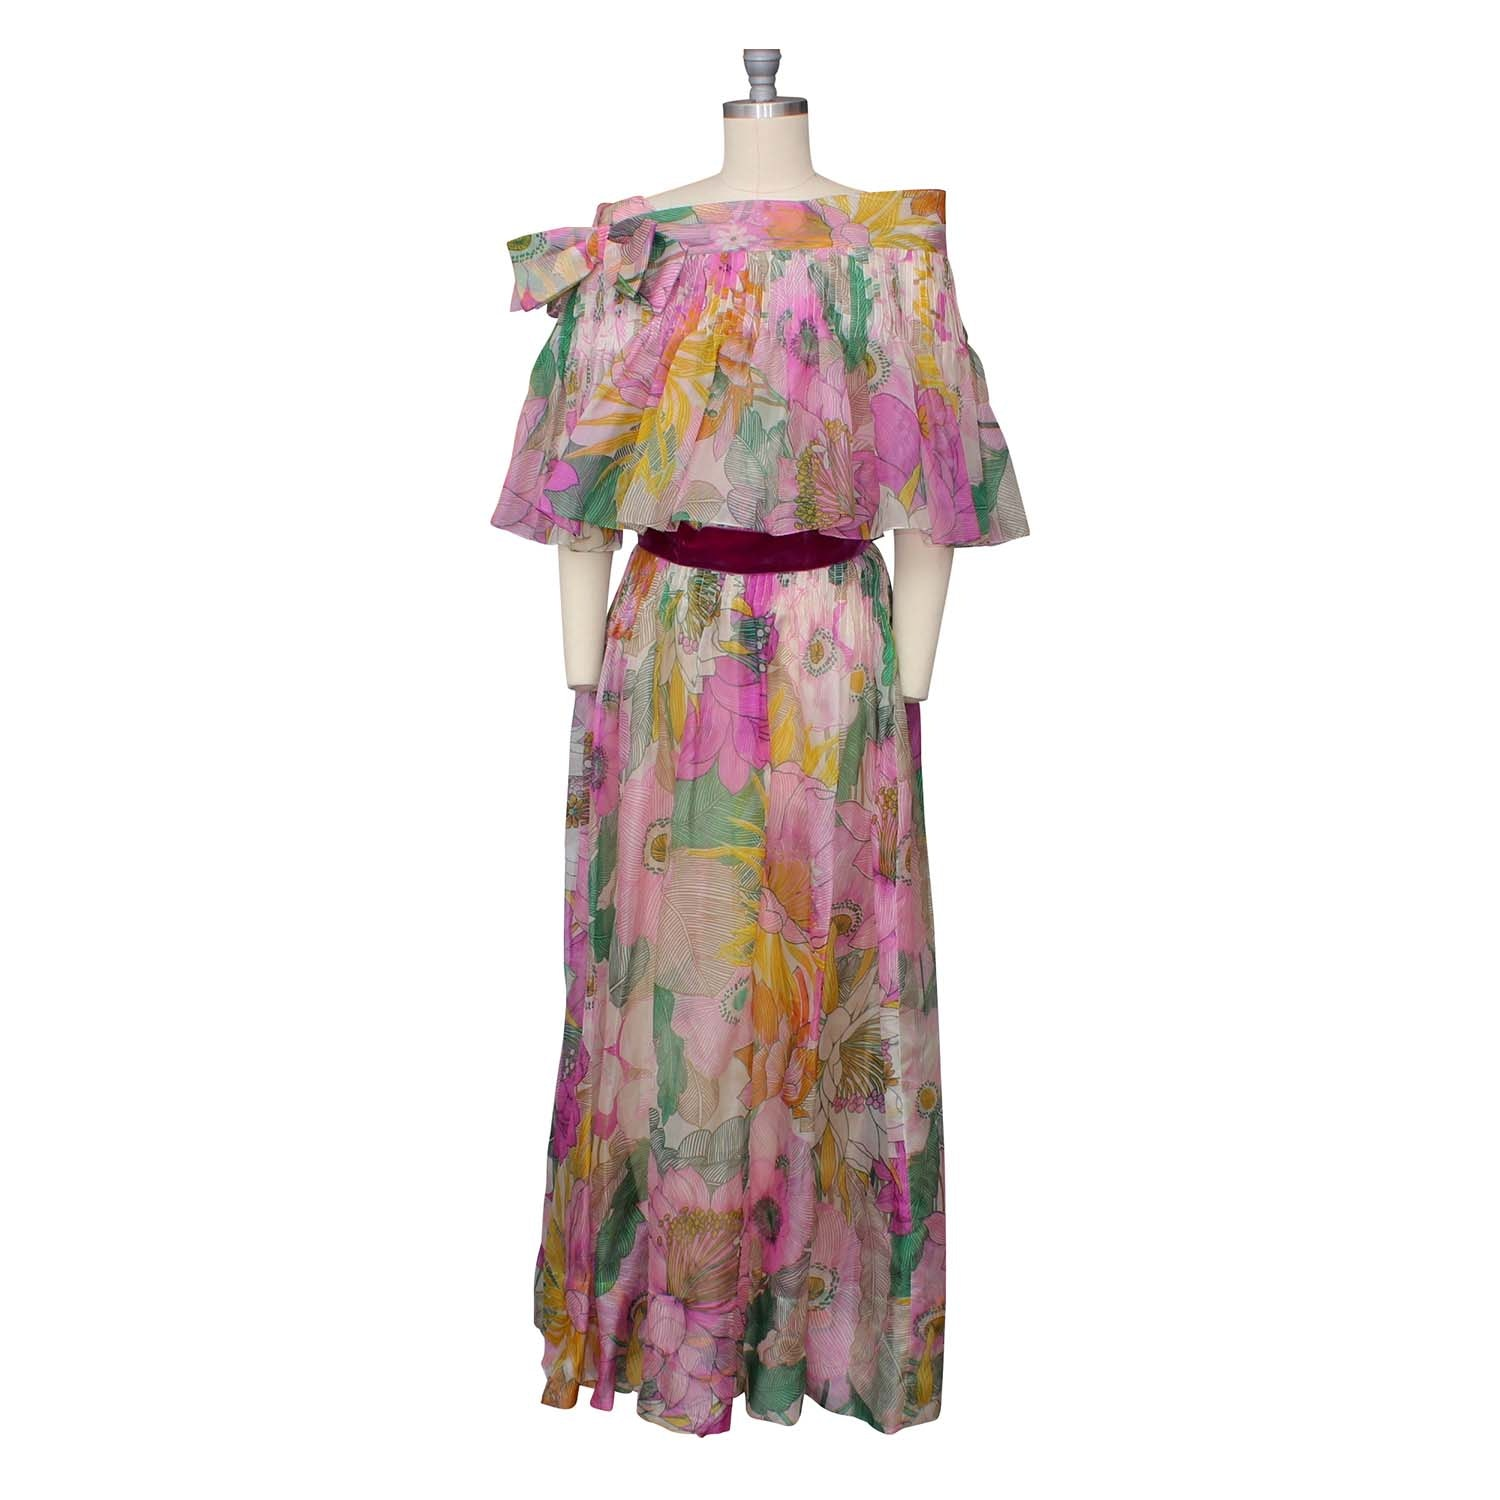 Mollie Parnis Vibrant Floral Chiffon Dress with Matching Capelet, 1960s Vintage